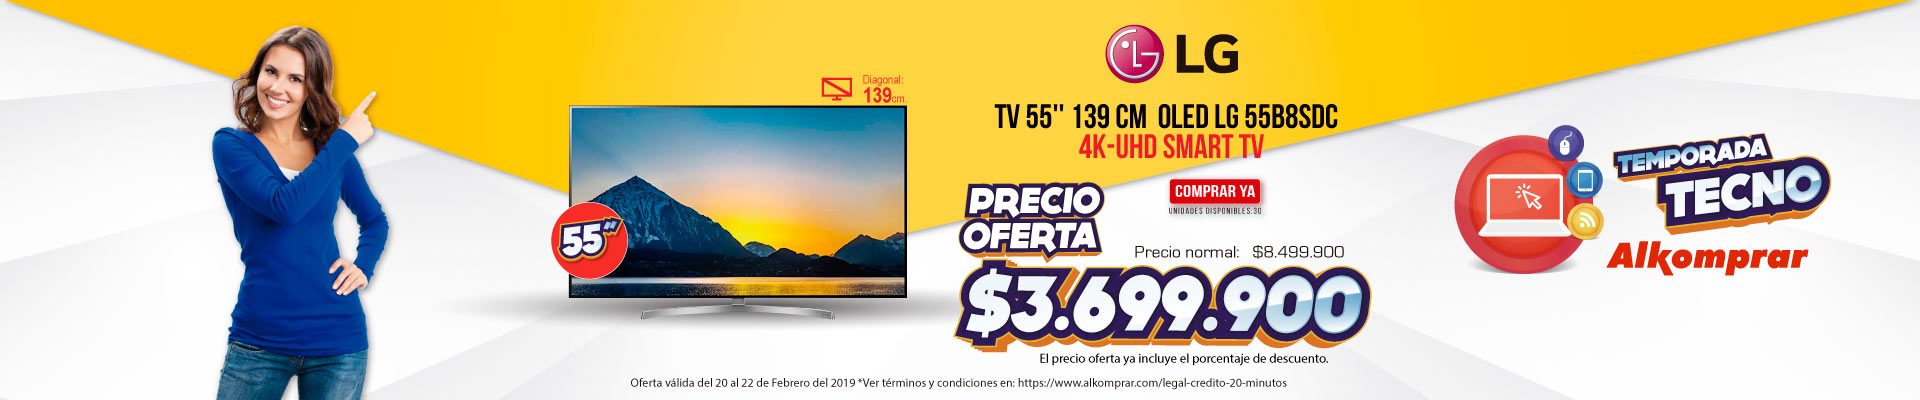 BP ALKP TV 55'' 139 cm OLED LG 55B8SDC 4K-UHD SMART TV